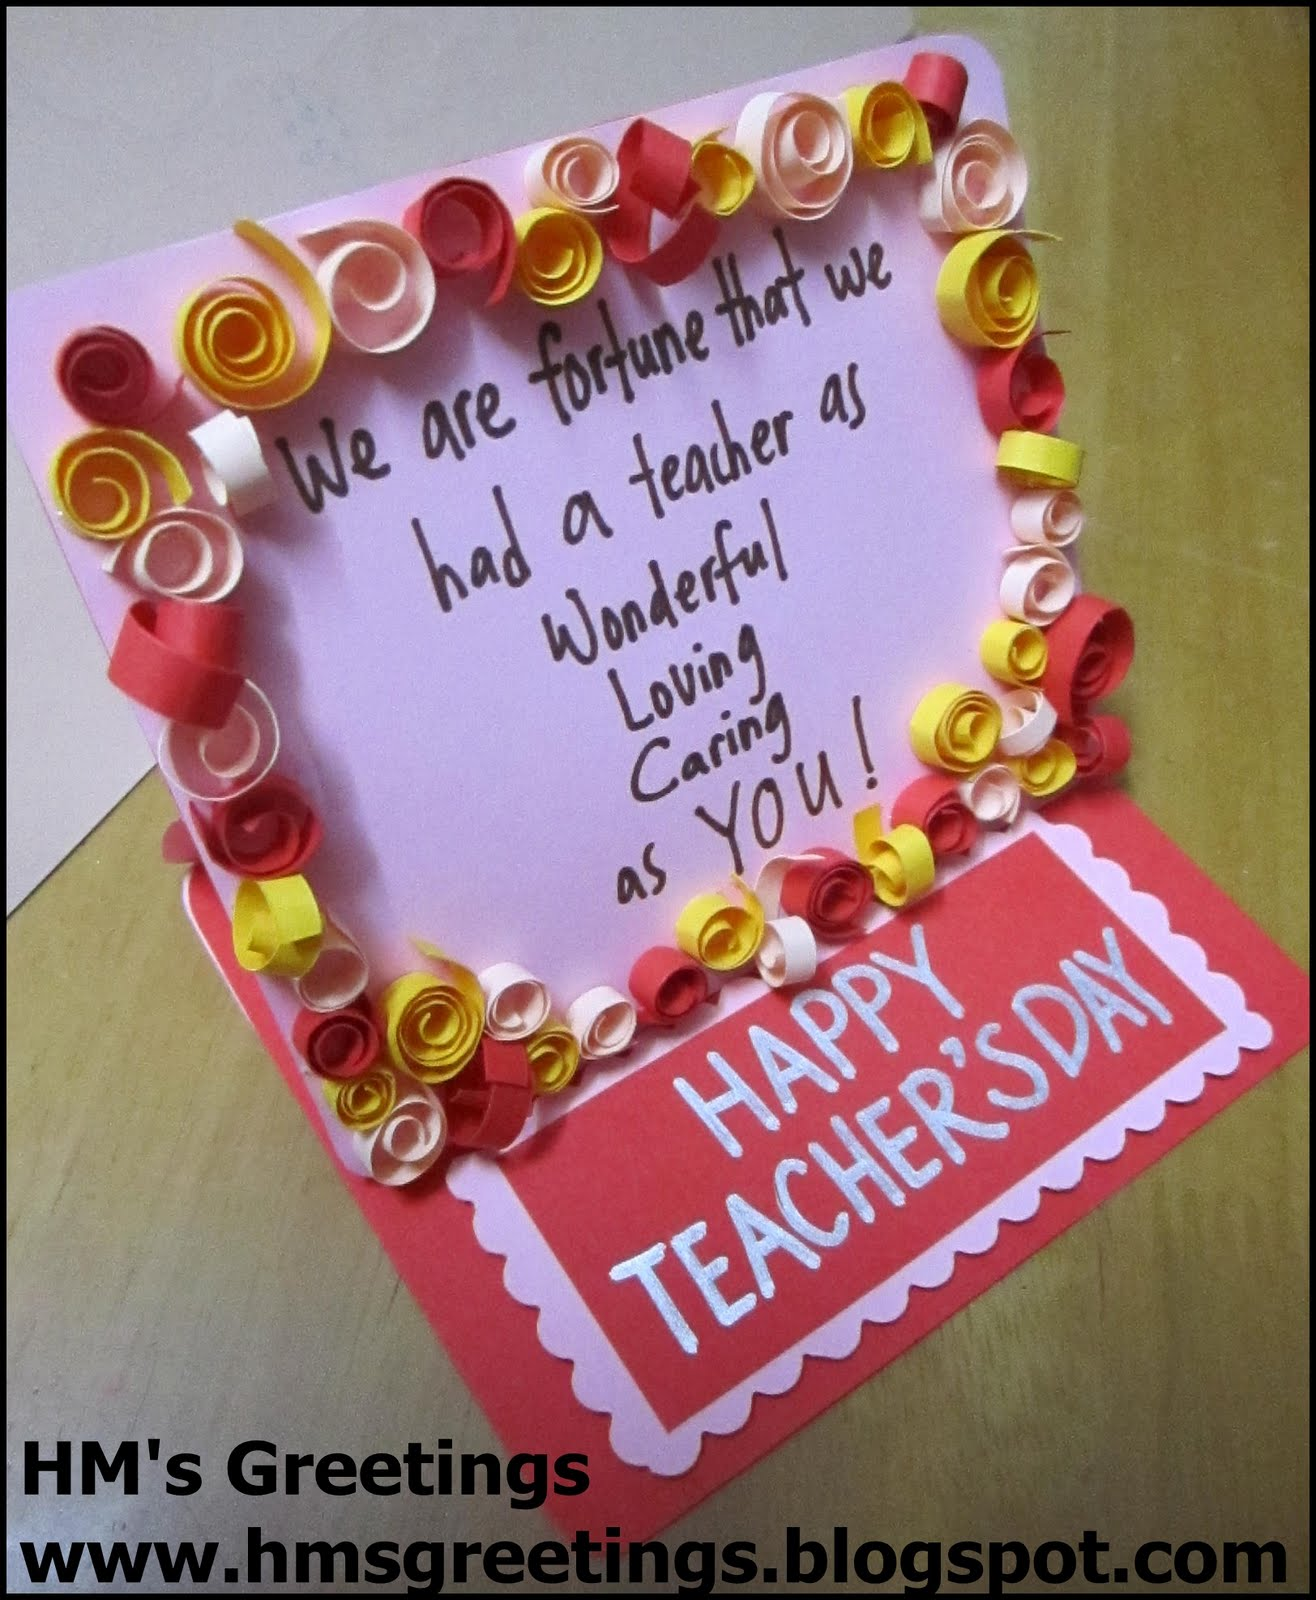 Hms greetings happy teachers day card 1 happy teachers day card 1 kristyandbryce Choice Image